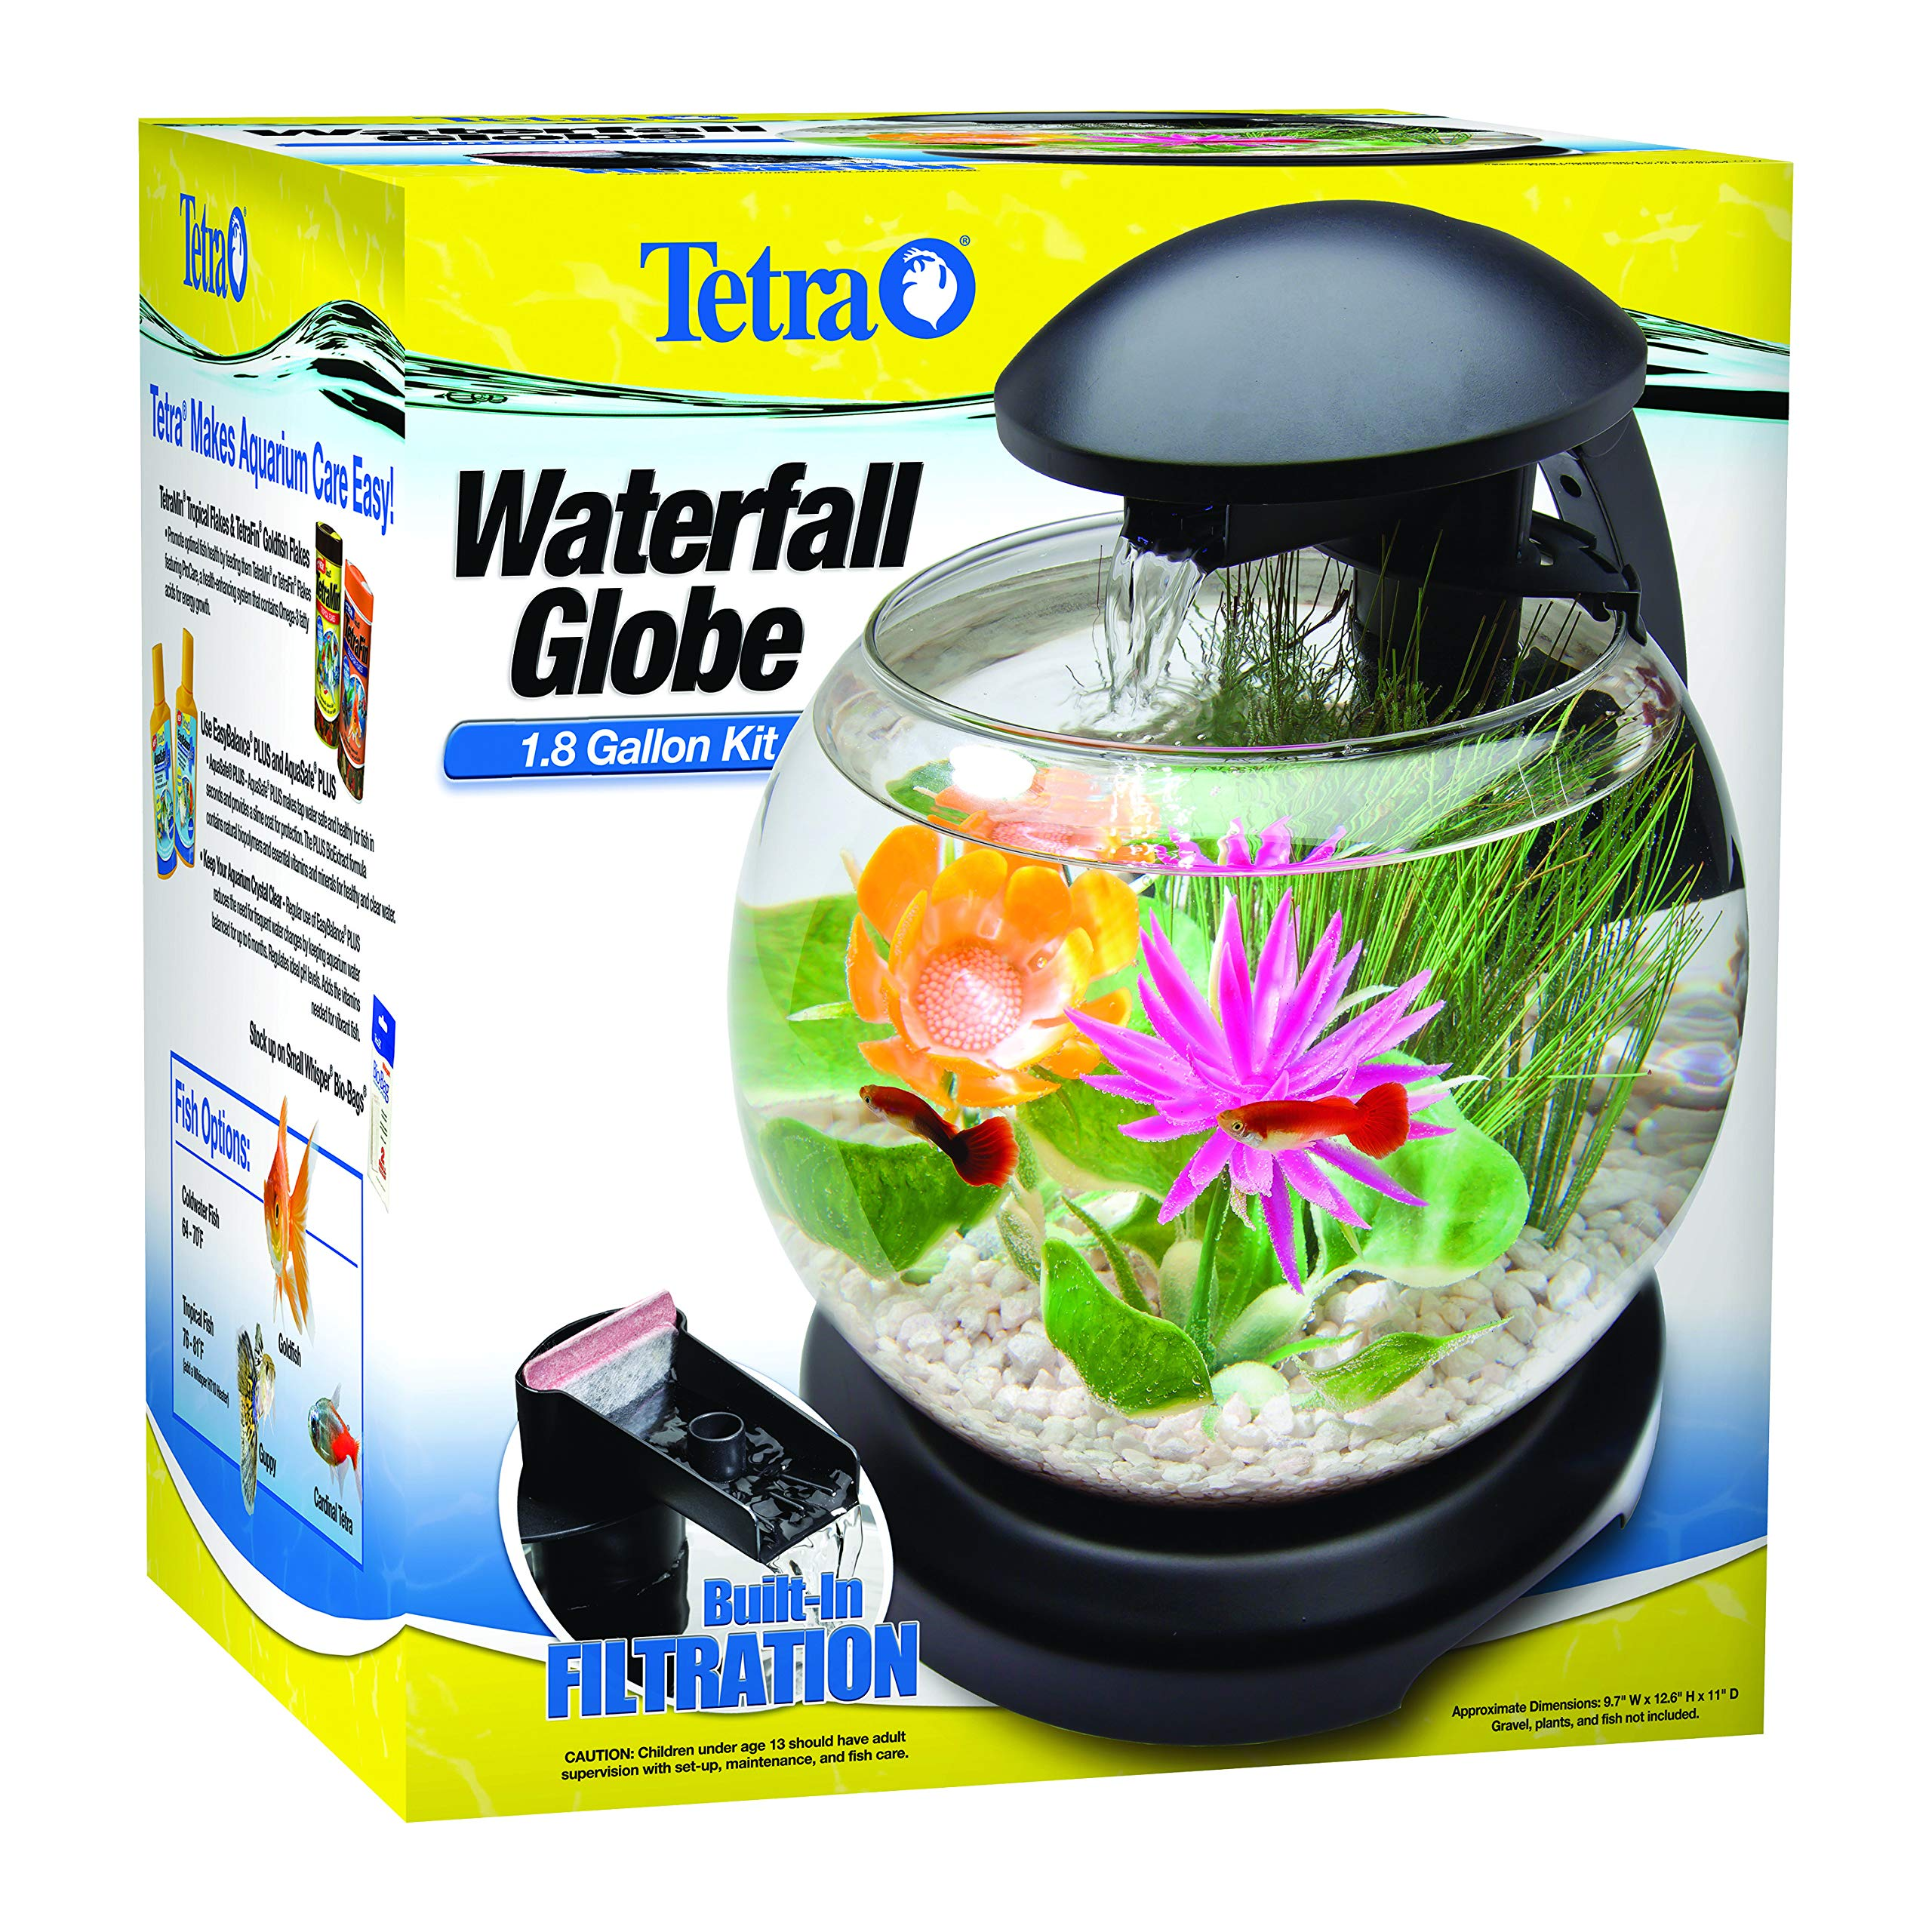 Tetra Waterfall Globe Kit 1.8 Gallons, Aquarium With Filtration by Tetra